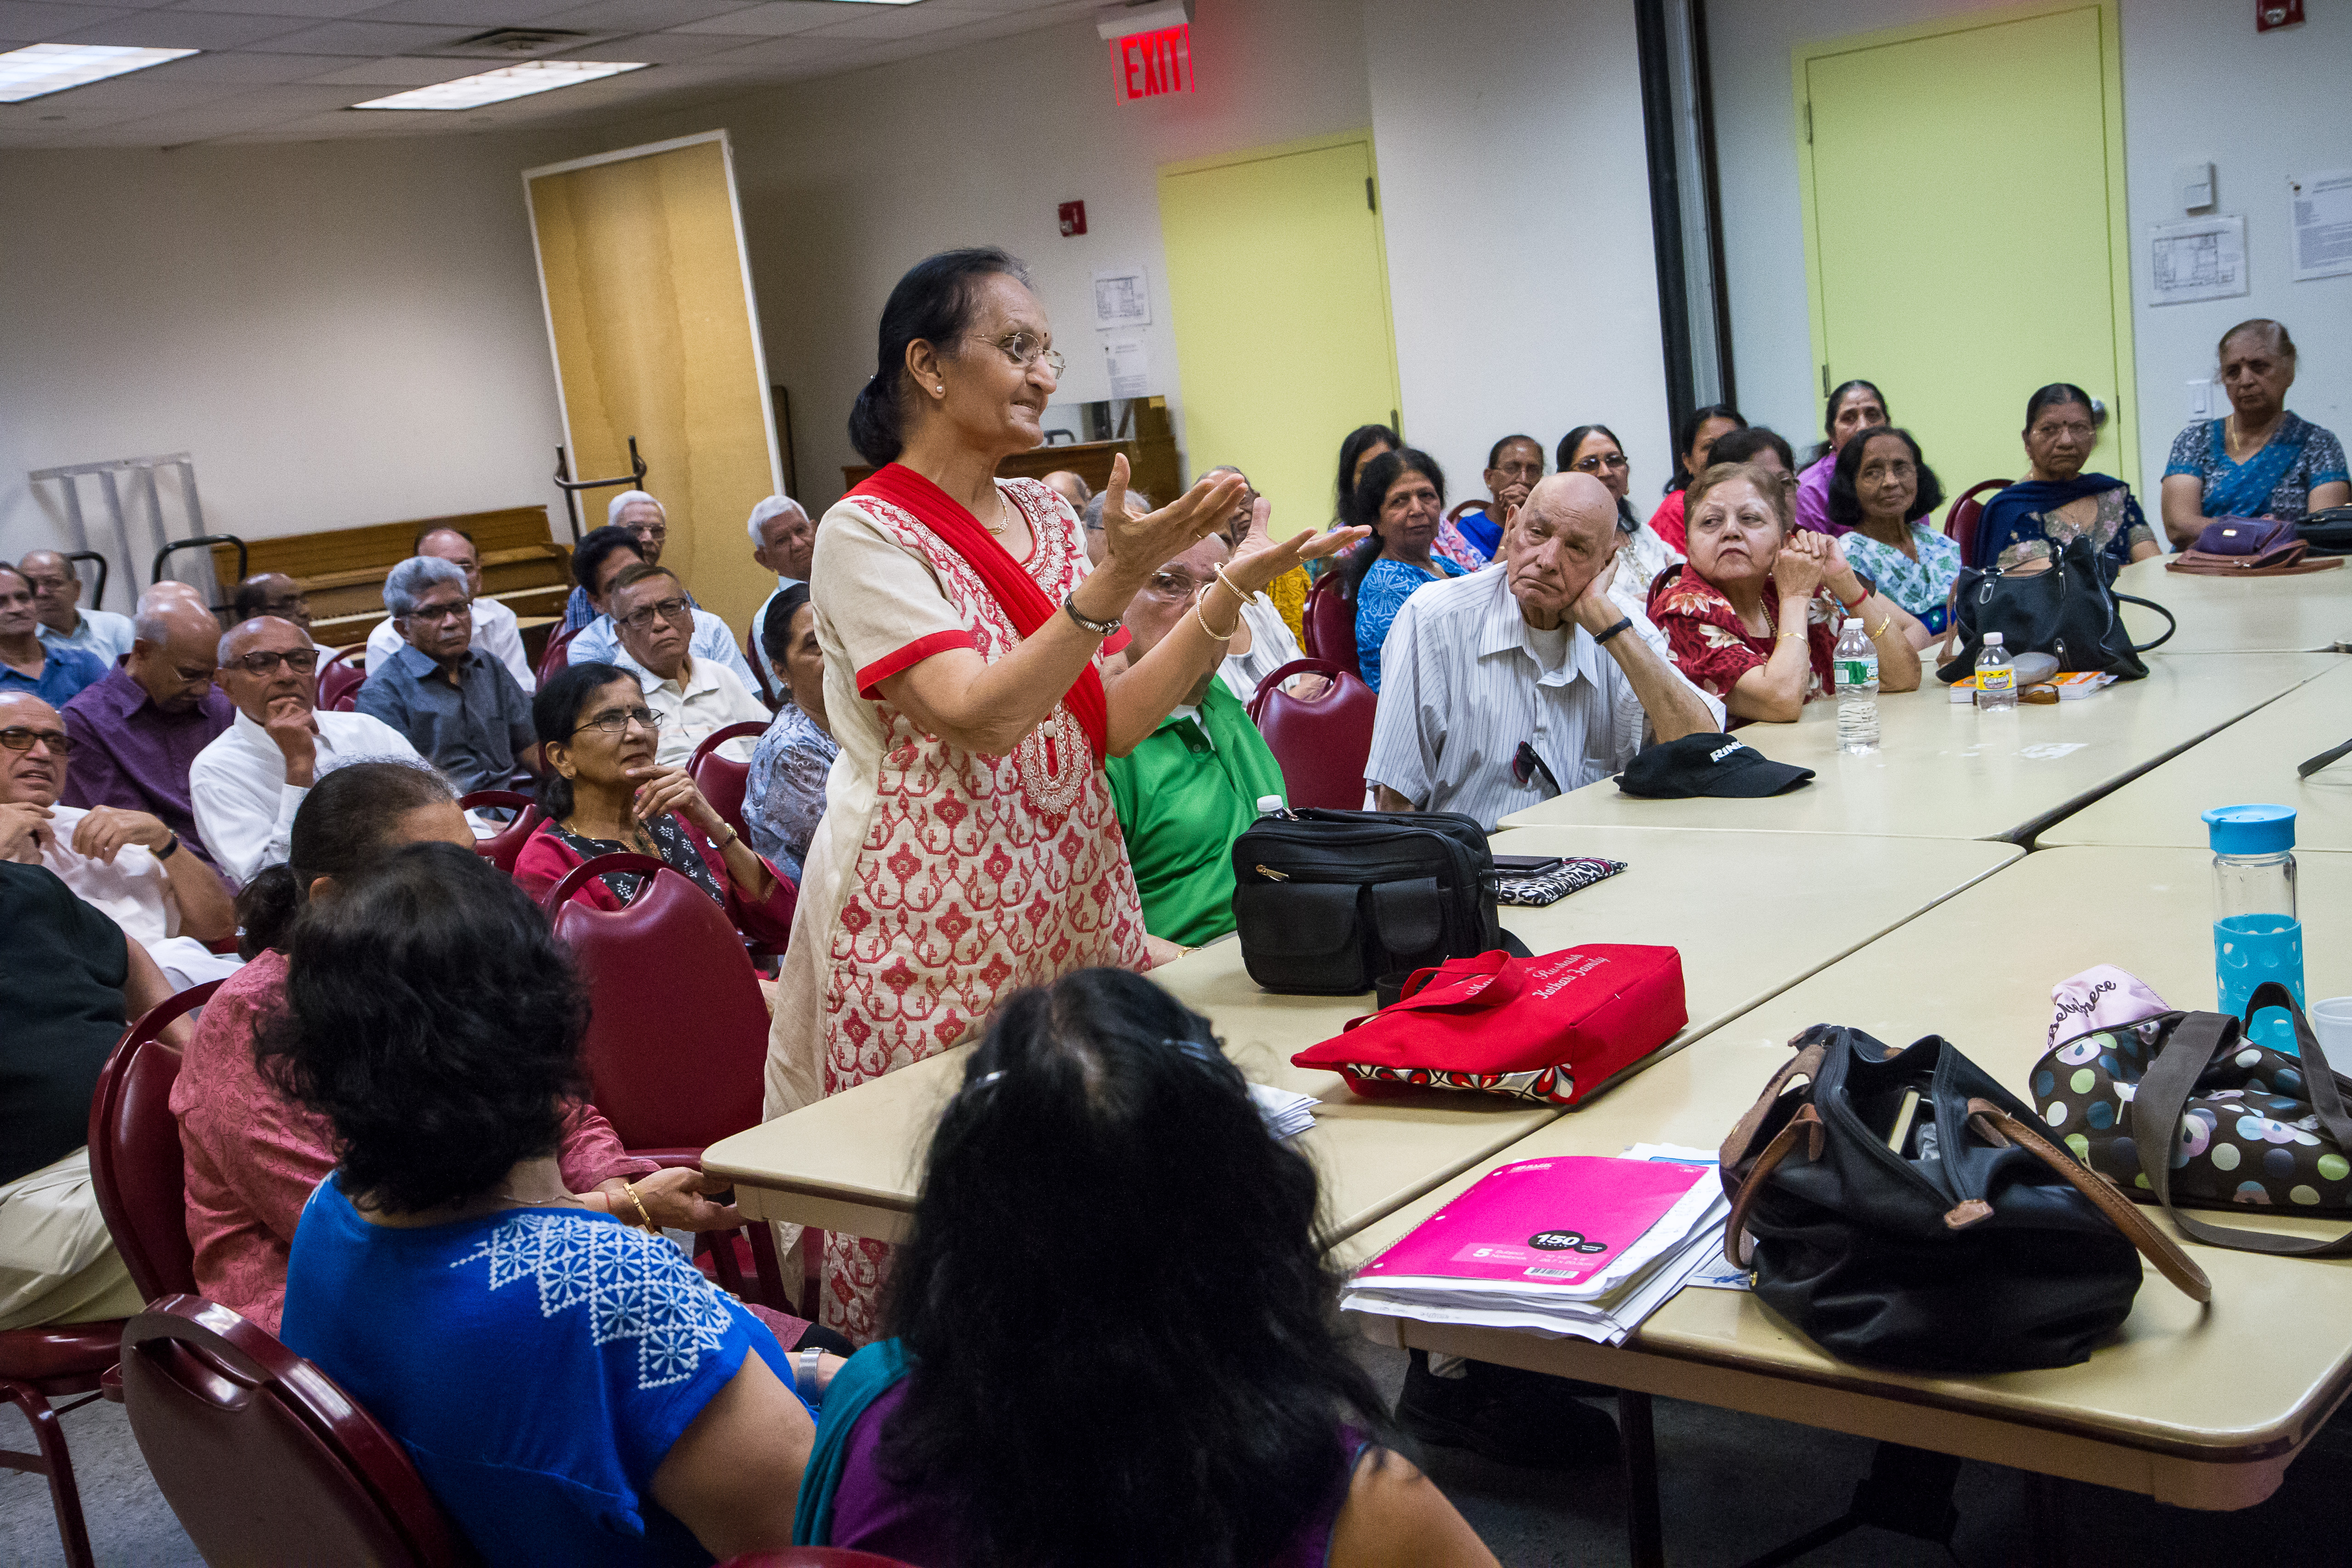 Usha Shah, 73, participates in a Father's Day discussion at India Home.